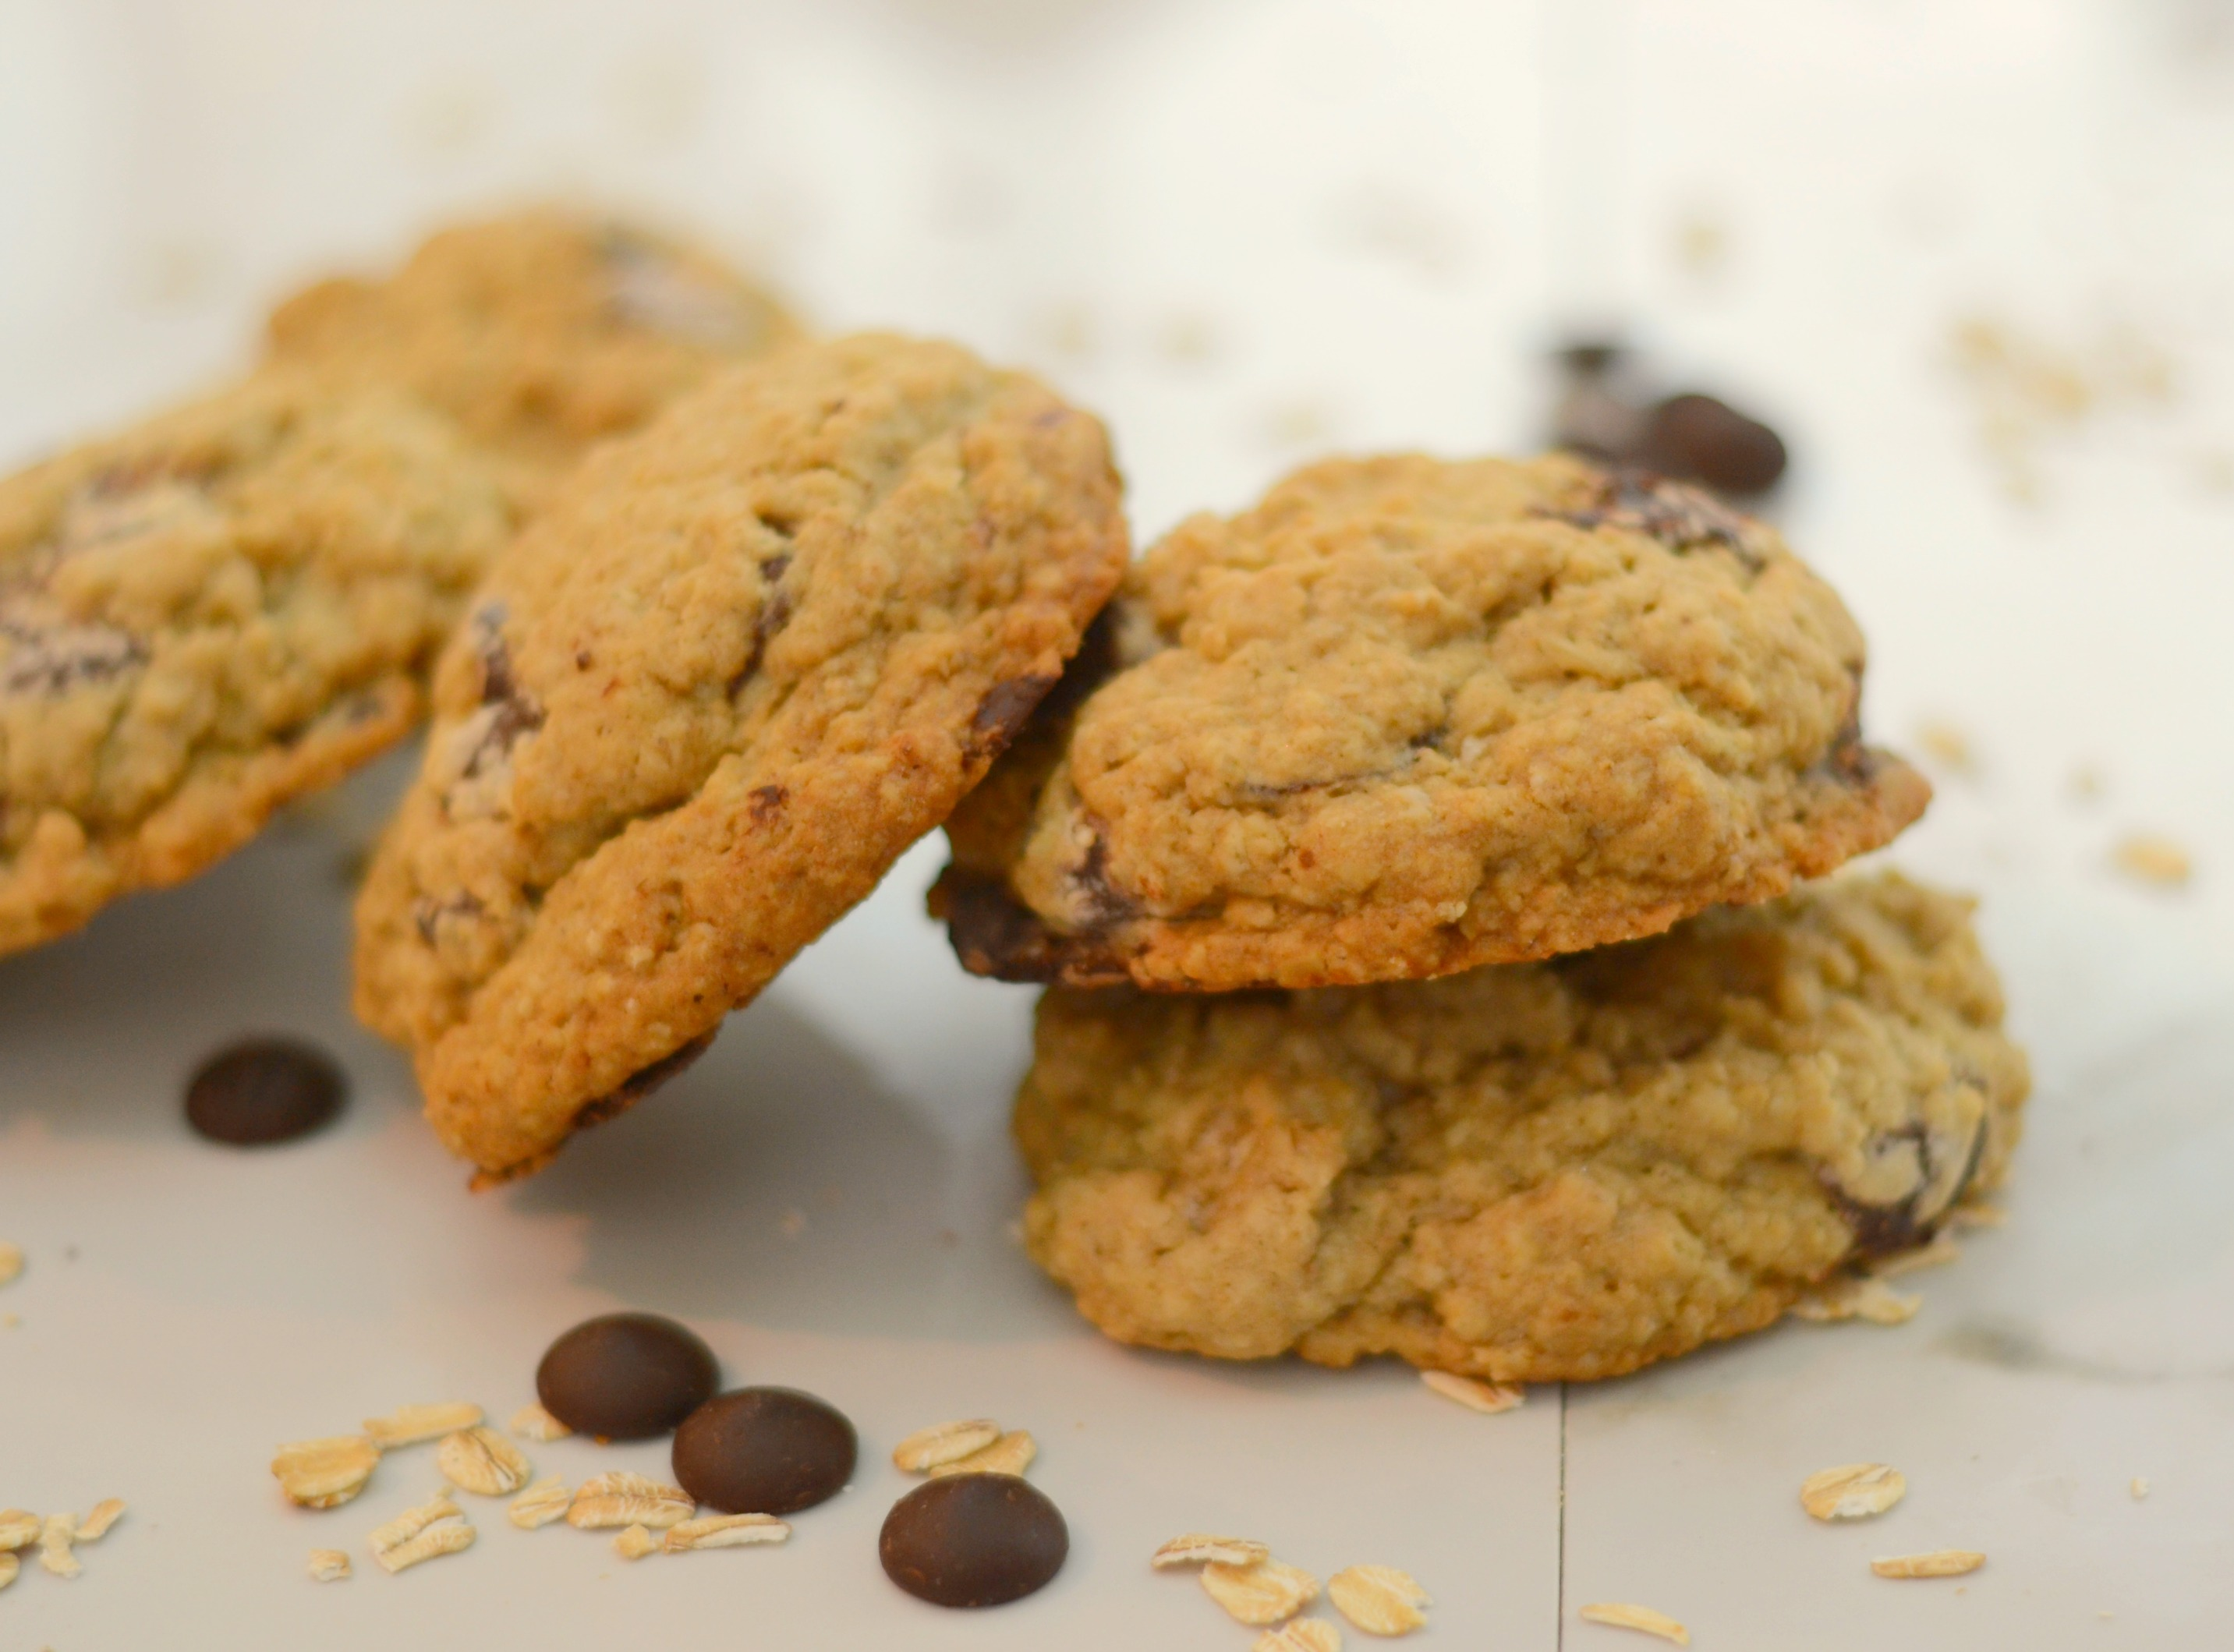 a toppled stack of oatmeal chocolate chip cookies on a white background